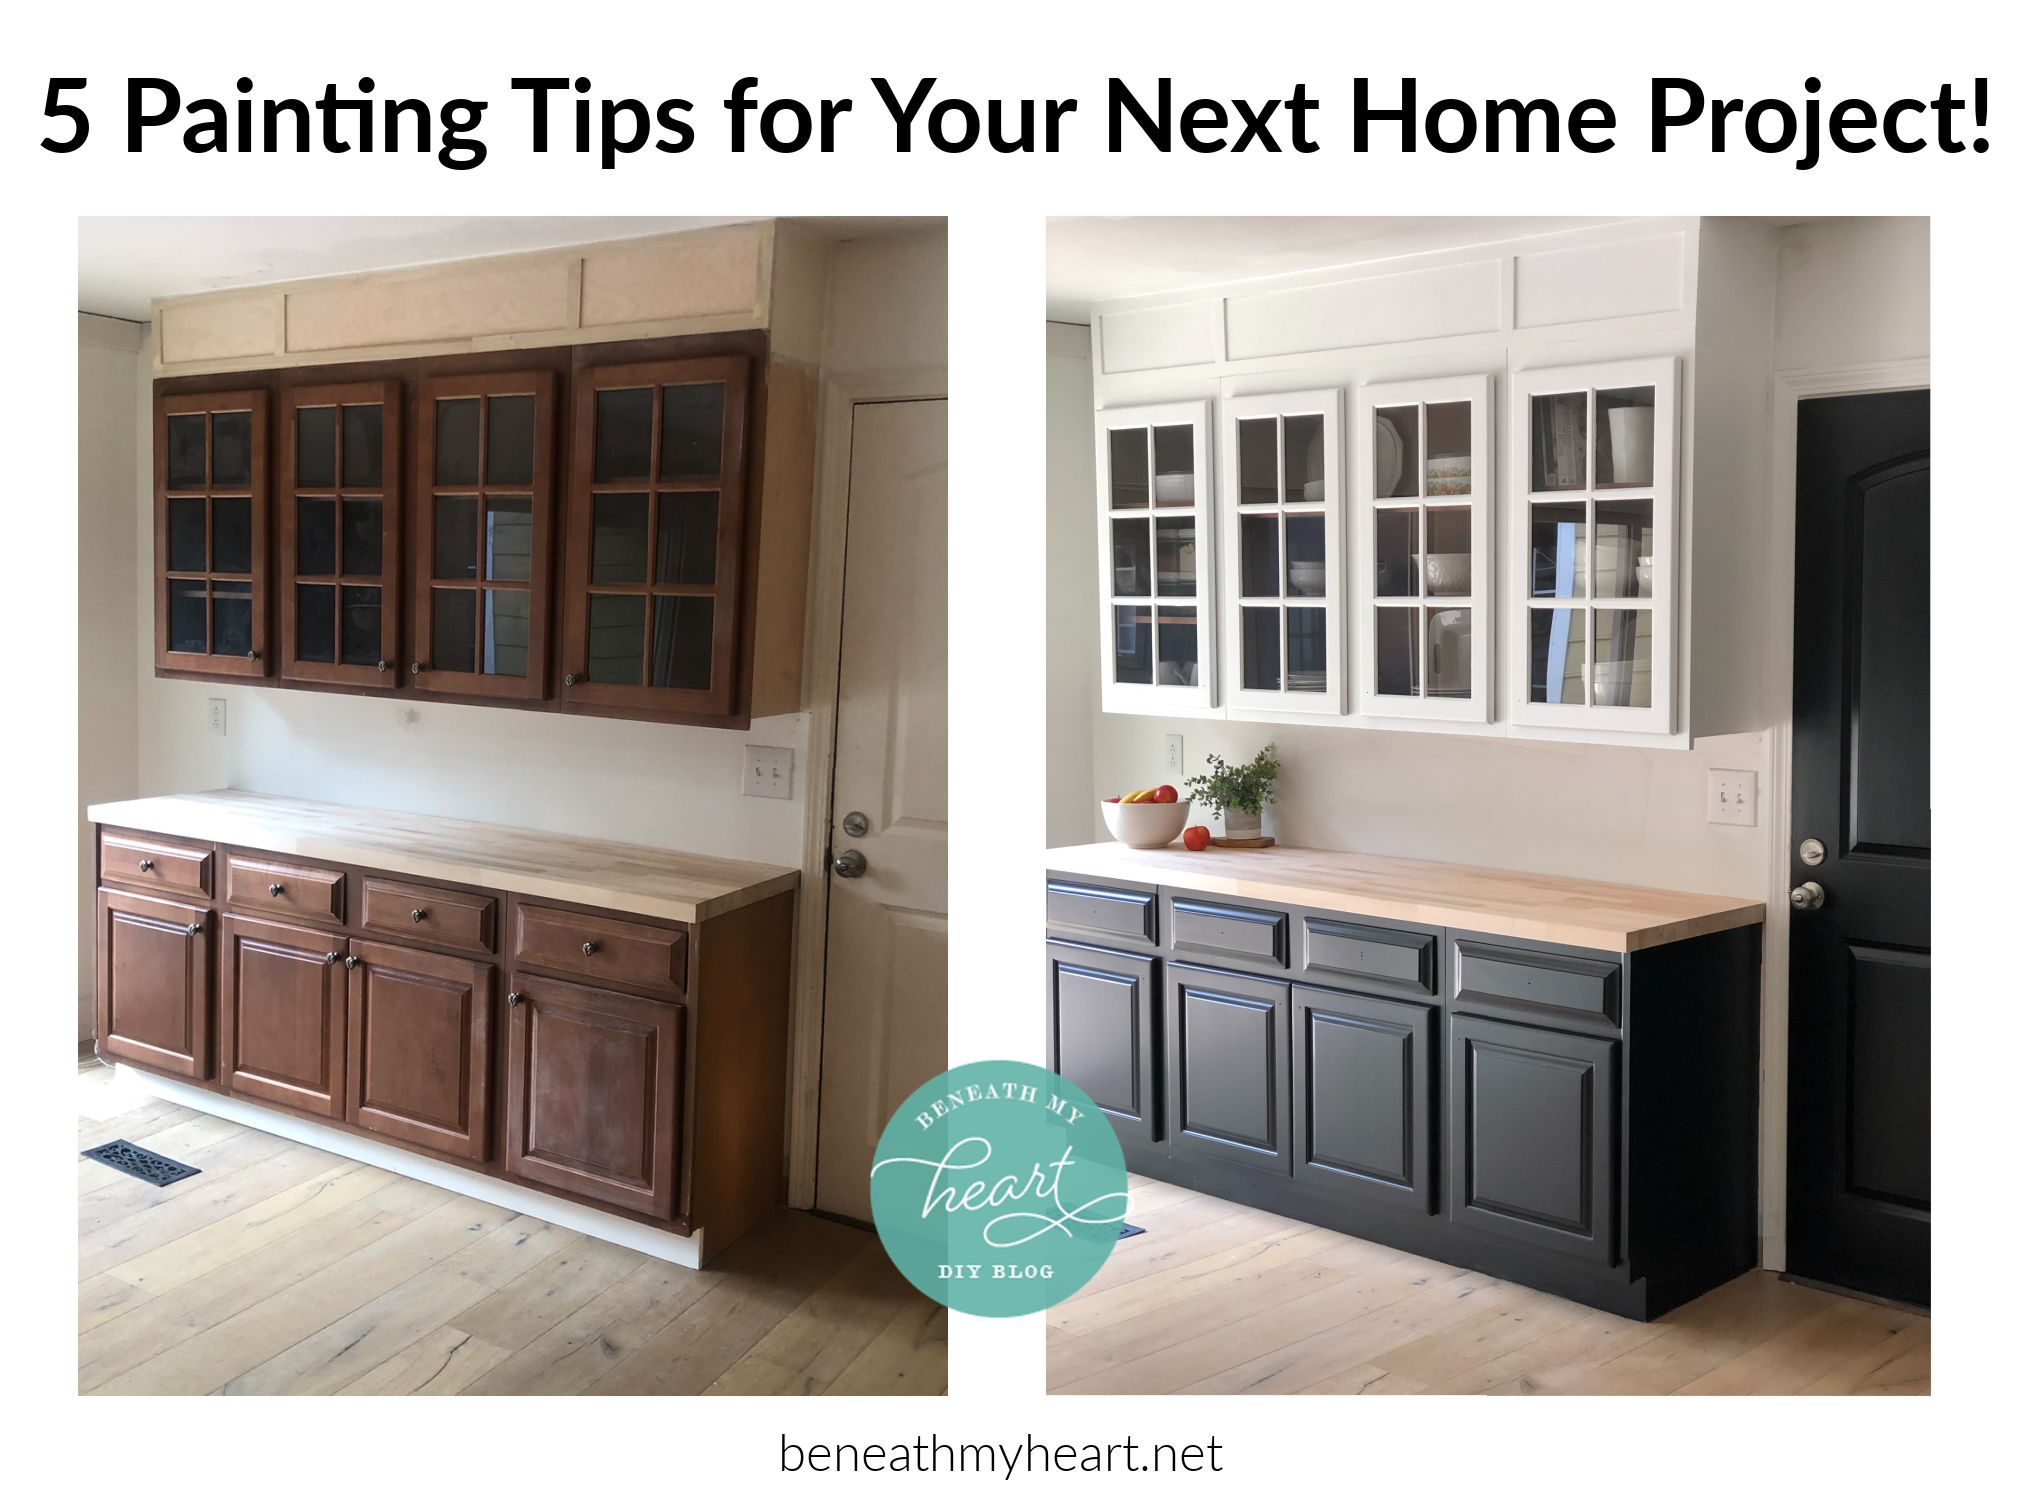 5 Paint Tips For Your Next Home Project Beneath My Heart In 2020 Home Projects Home Next At Home